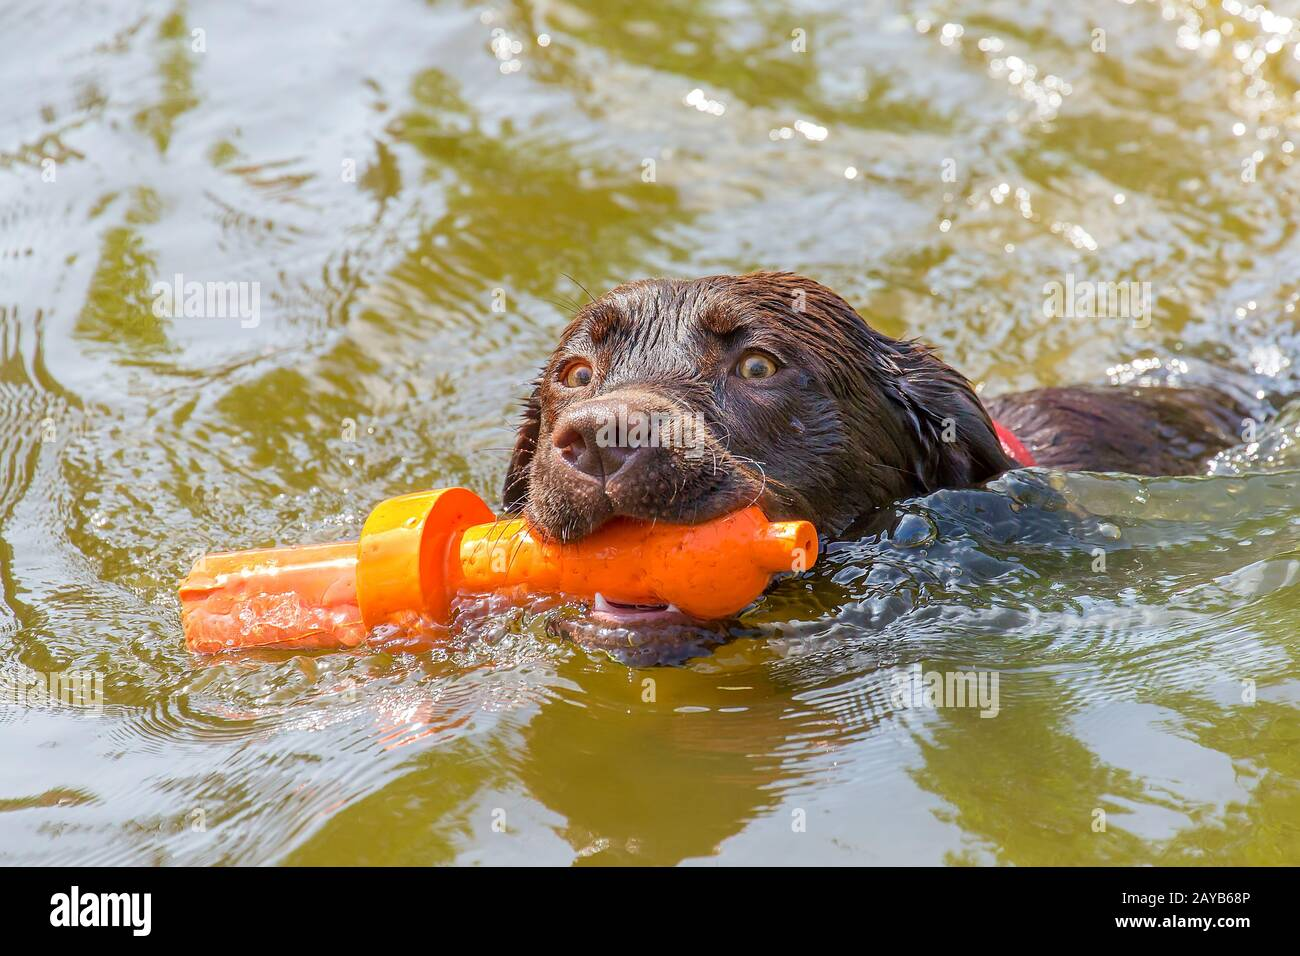 Labrador dog with rubber toy swimming in water Stock Photo